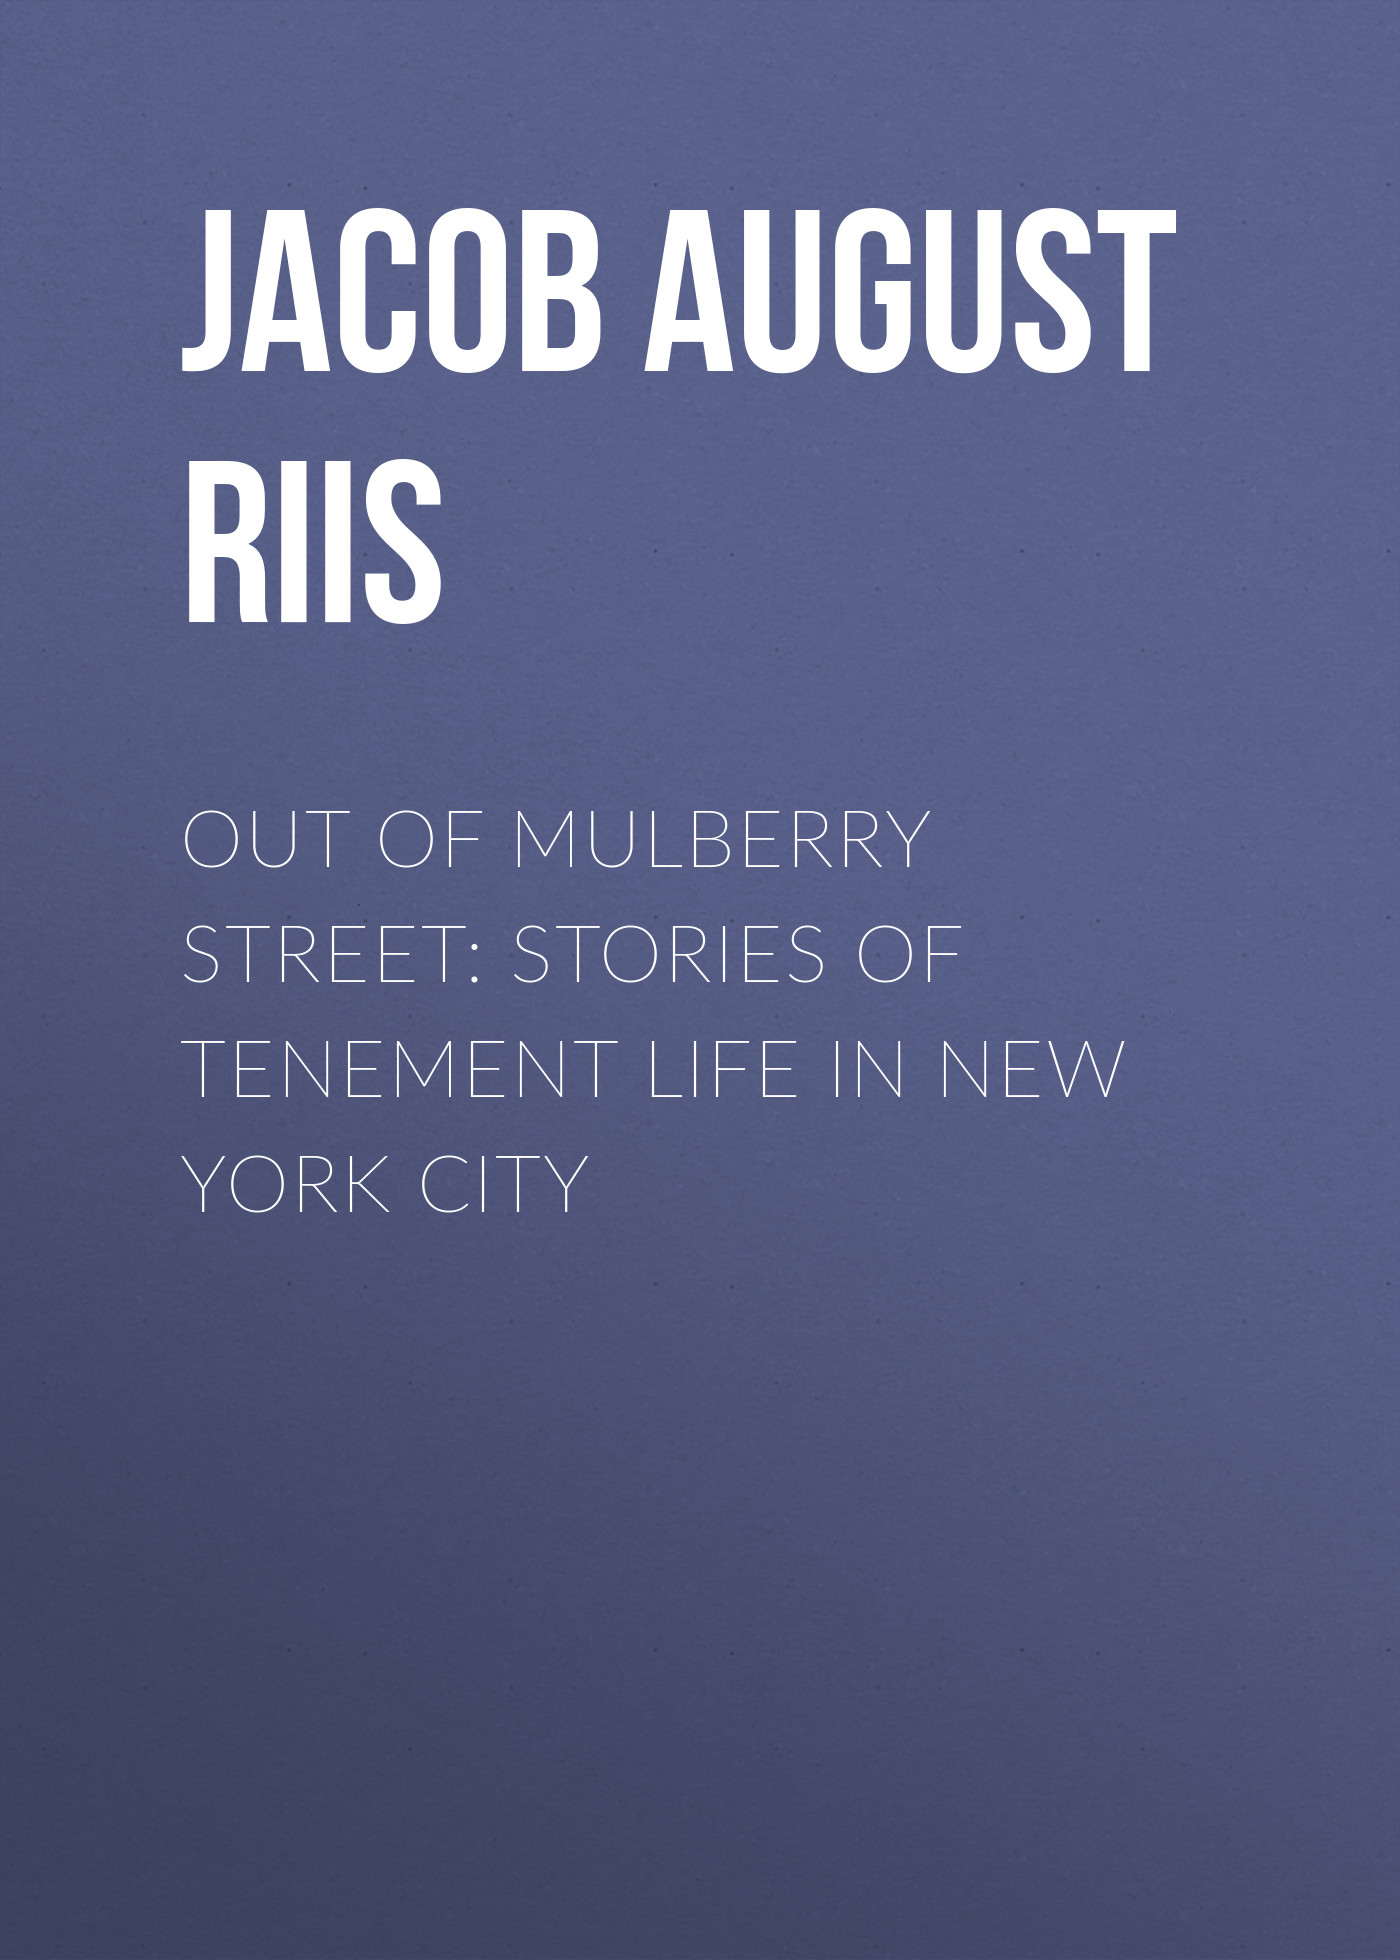 Jacob August Riis Out of Mulberry Street: Stories of Tenement life in New York City new lepin 2016 dhl 15004 fire brigade station 2313 pcs creator city street building blocks bricks toy gift compatible 10197